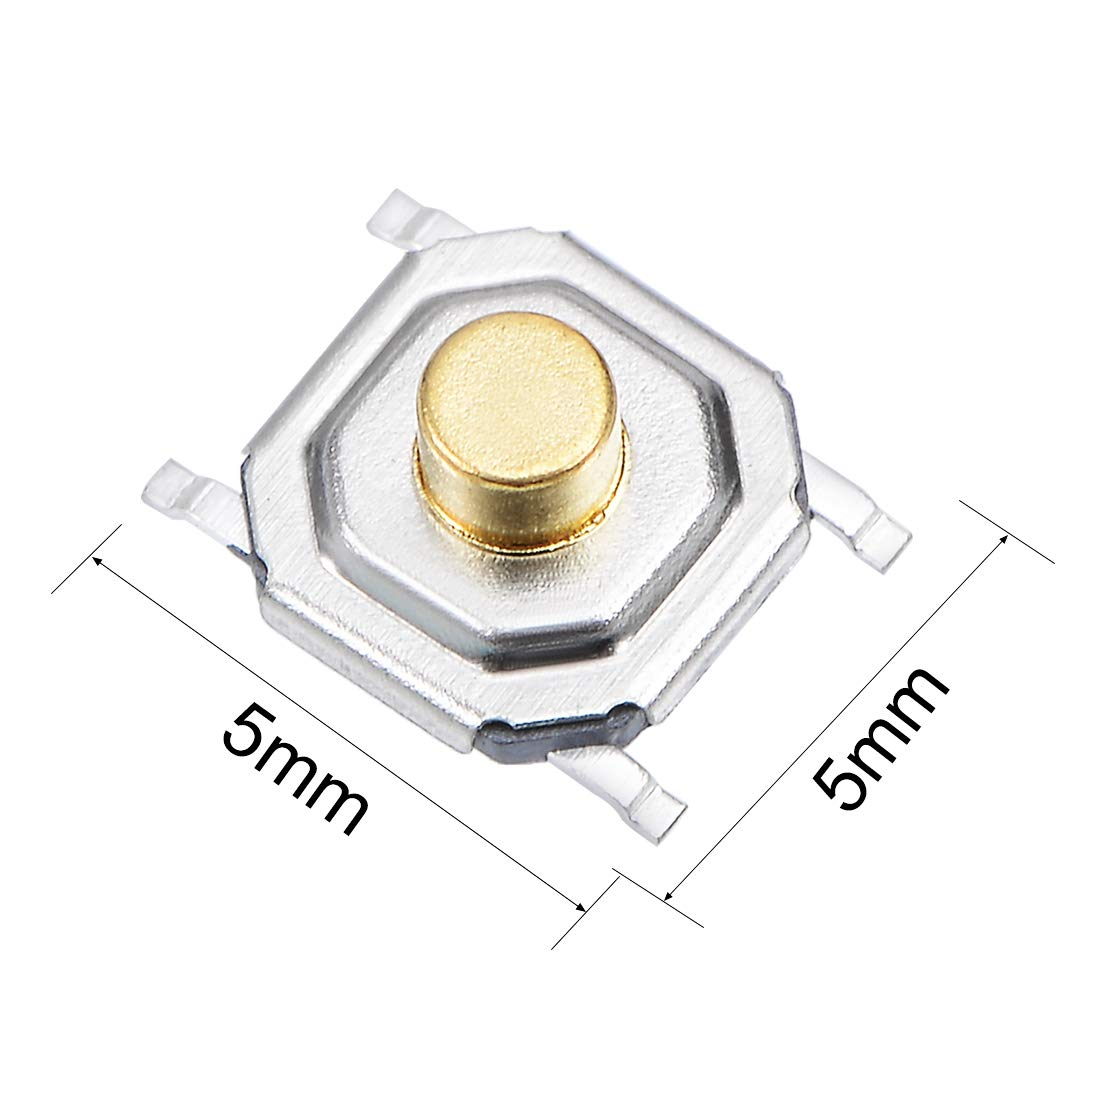 Uxcell 5pcs 5x5x15mm Momentary Panel Pcb Smd Smt Mount 4 Pins Push Button 5mm Spst Tactile